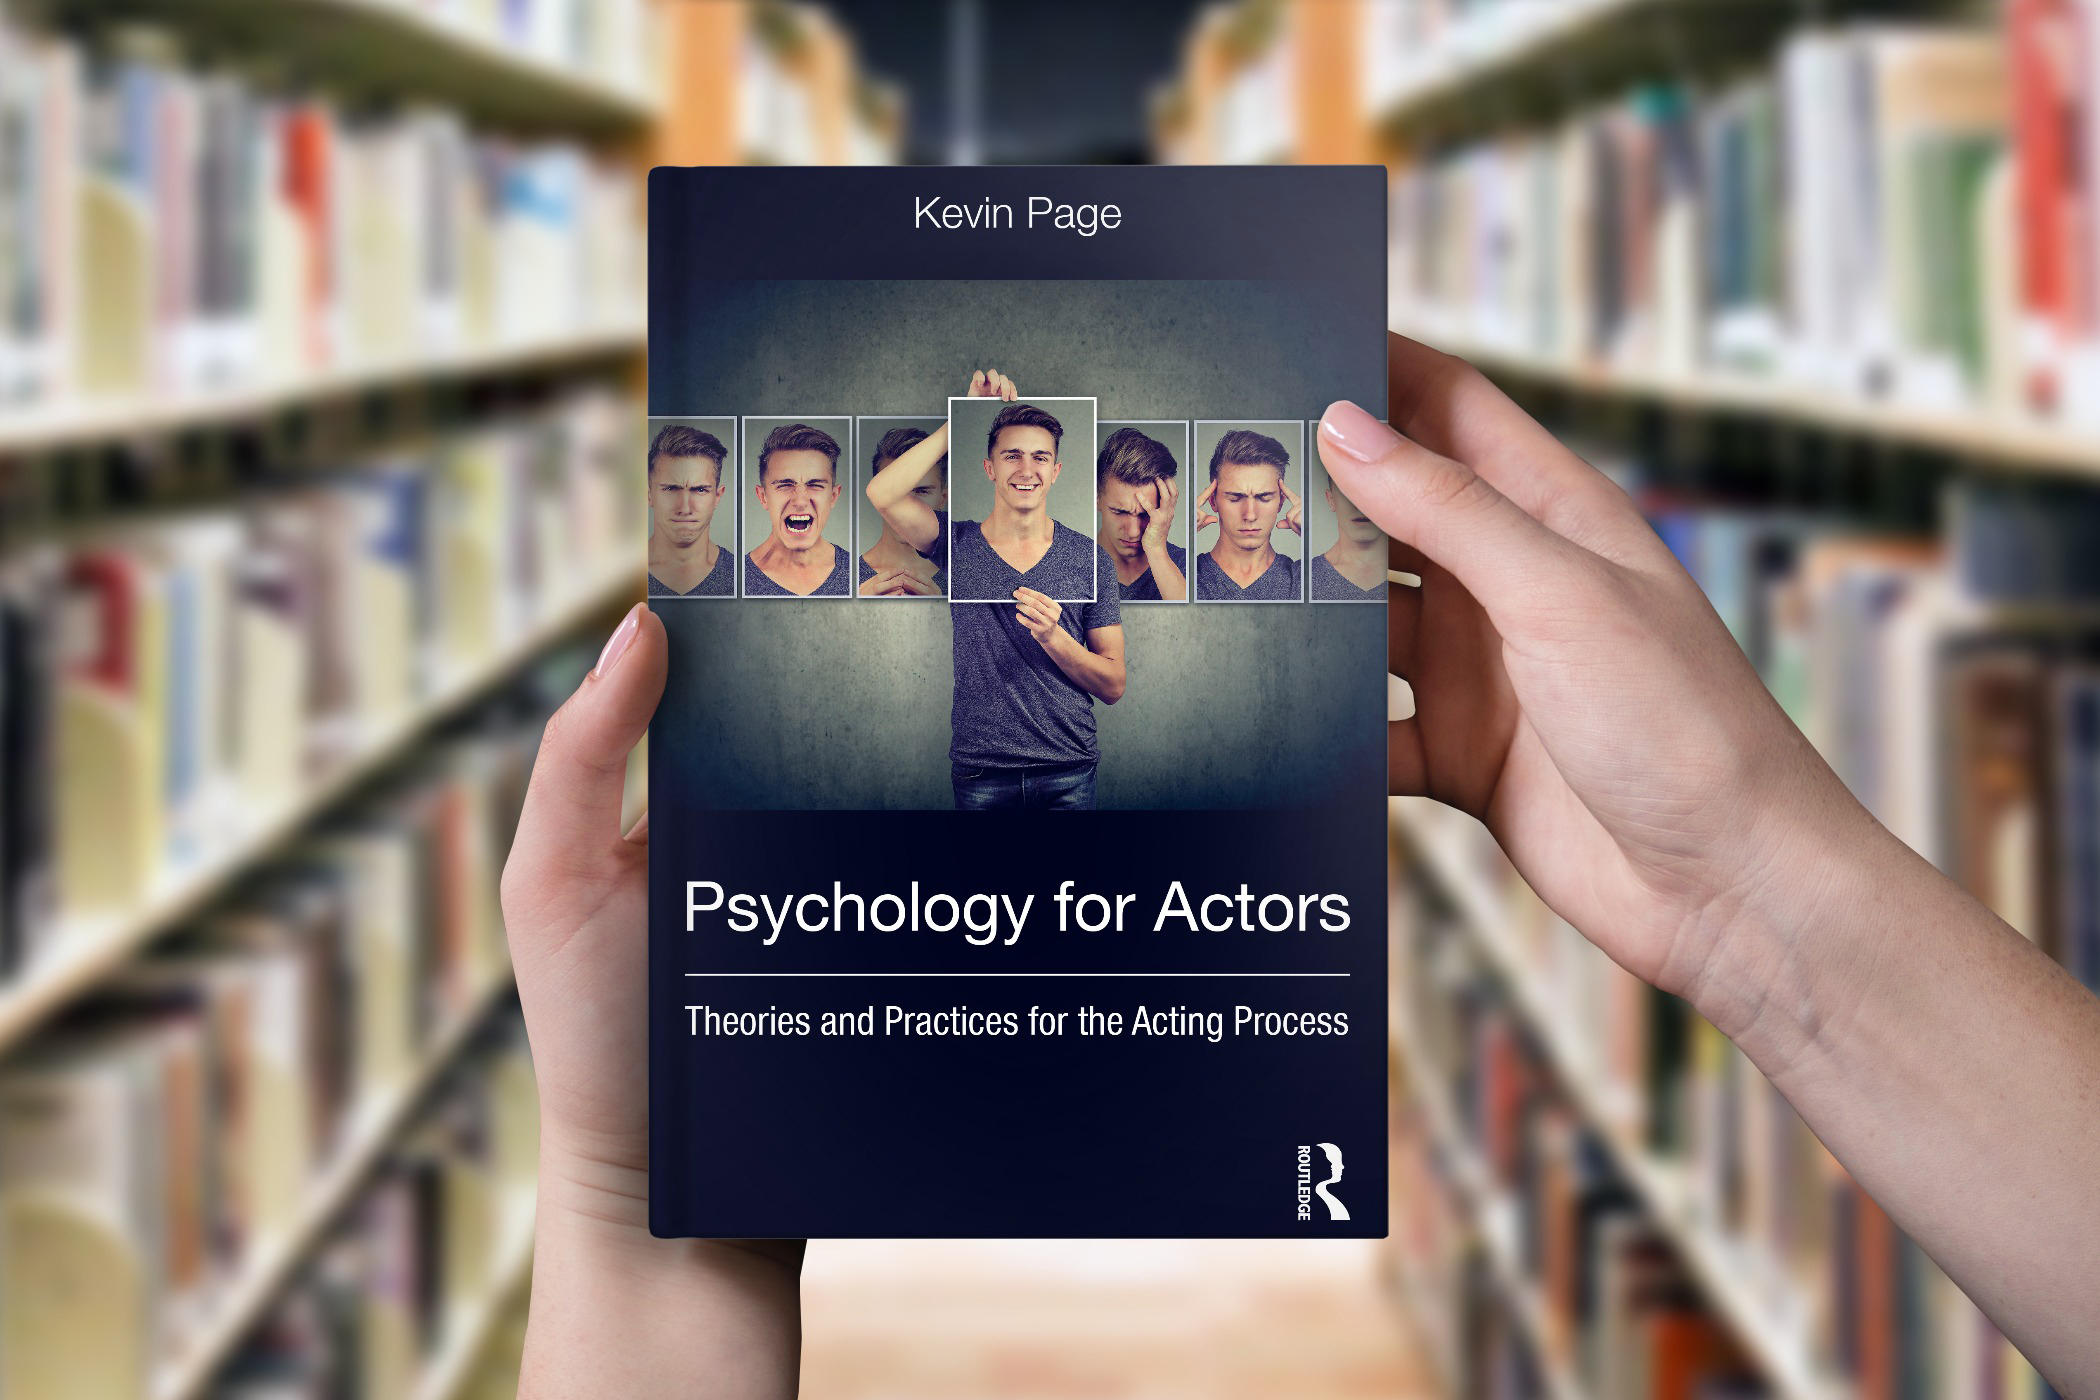 Psychology for Actors: Theories and Practices for the Acting Process